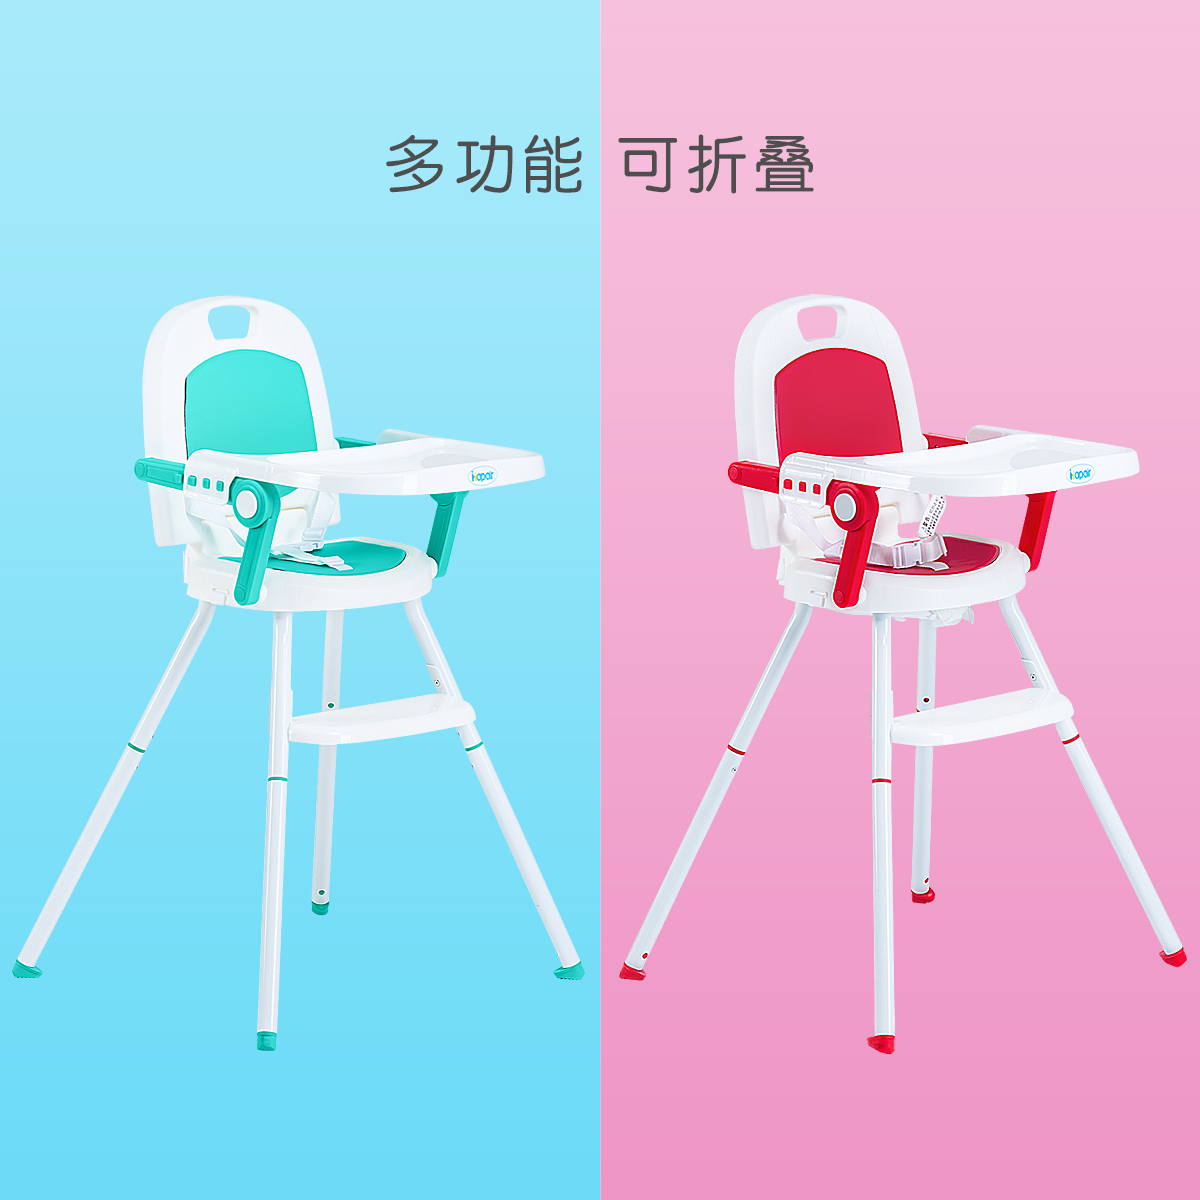 2-in-1 Highchairs Portable Foldable Multifunctional Seat Baby Seat Dining Table Chair Detachable travel dining chair pouch multifunctional highchairs portable foldable infant seat chair baby to eat